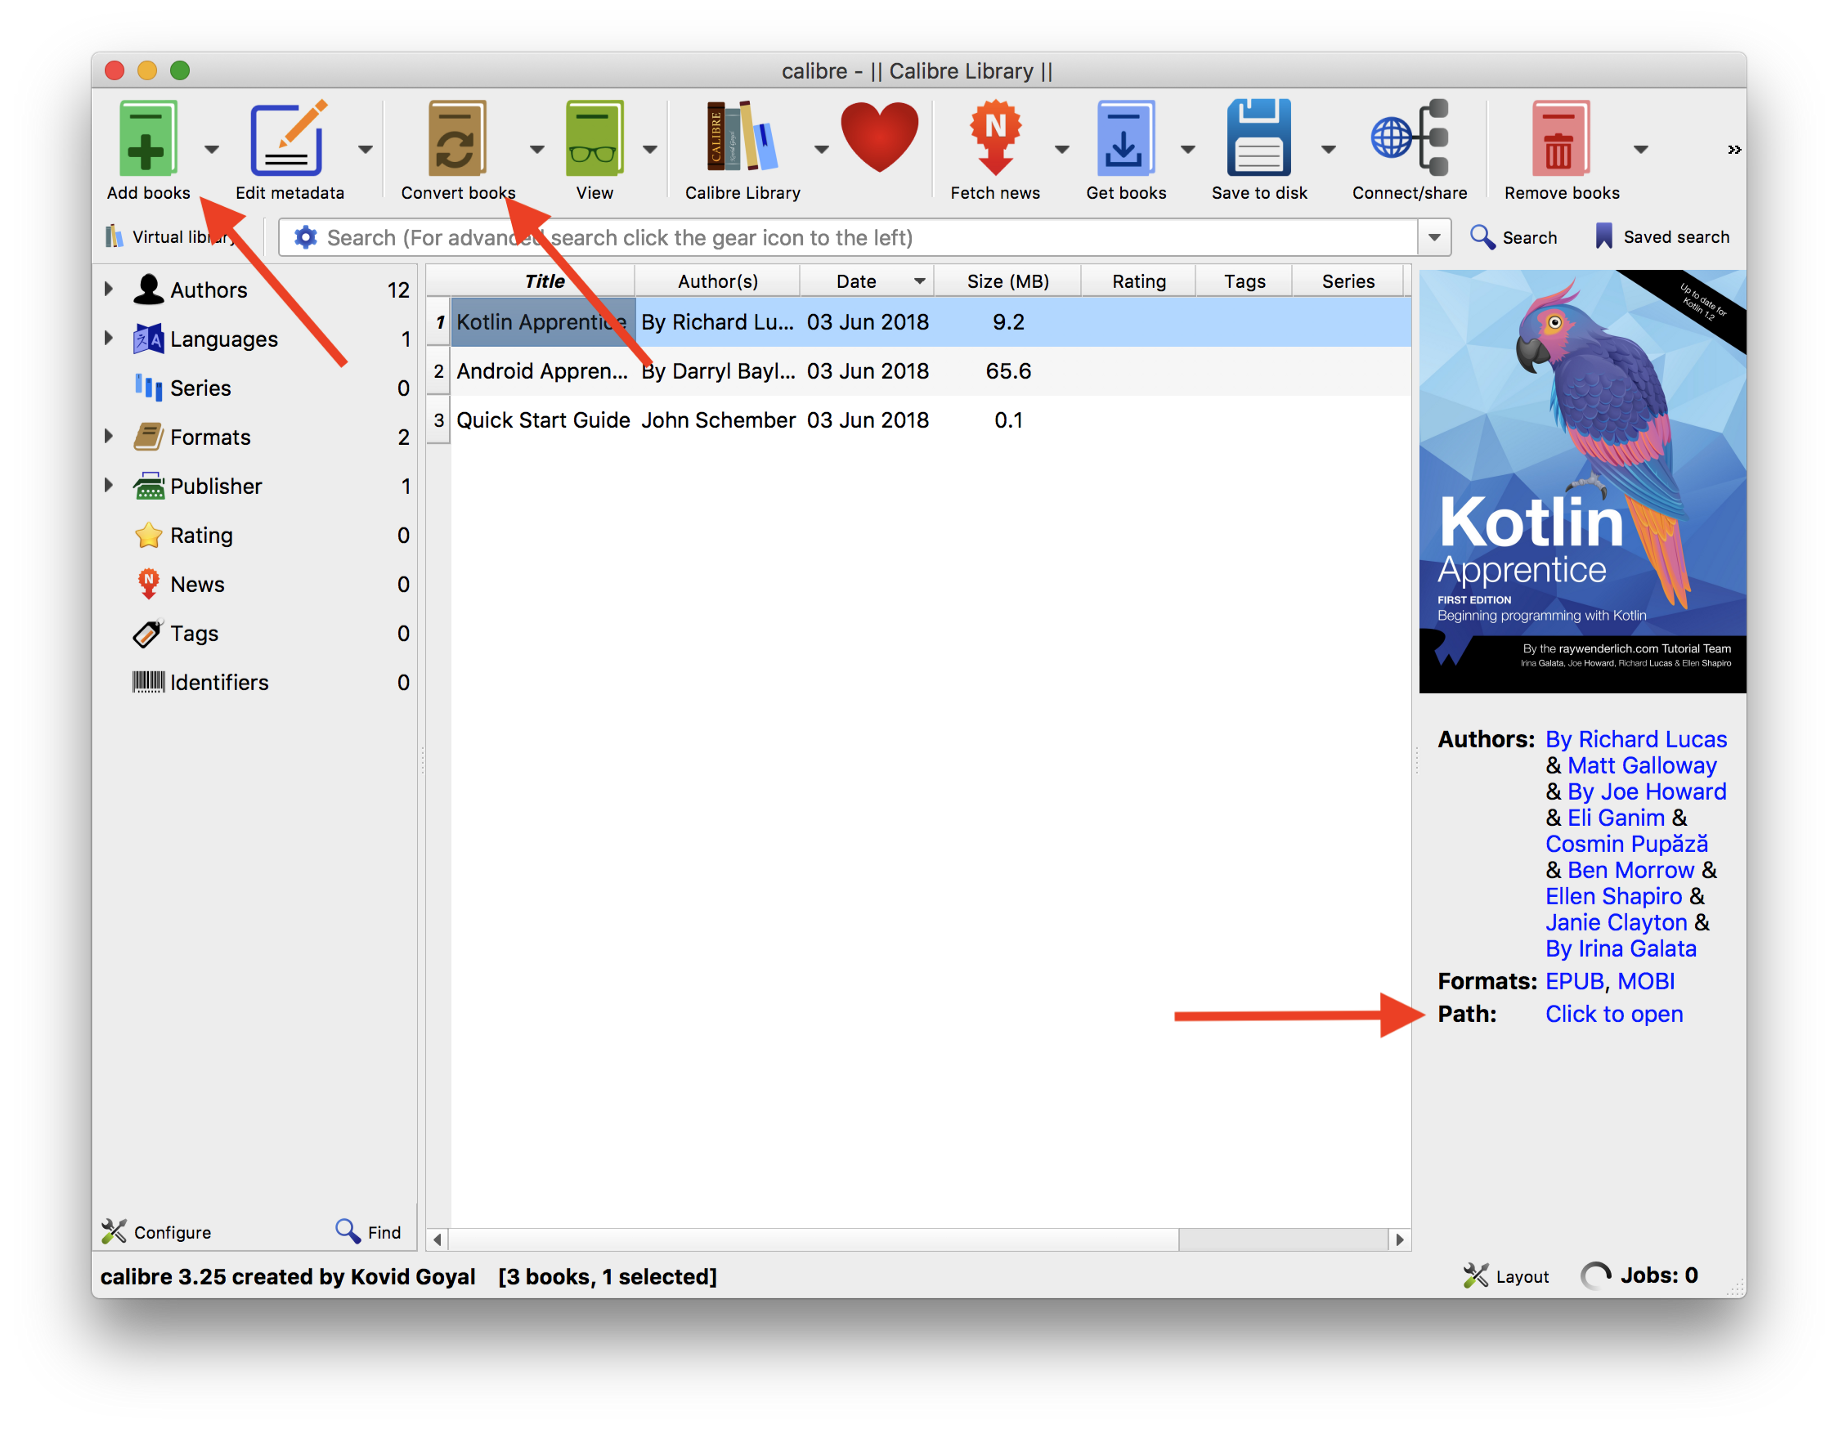 How to send large files to your Kindle - Victoria Gonda - Medium